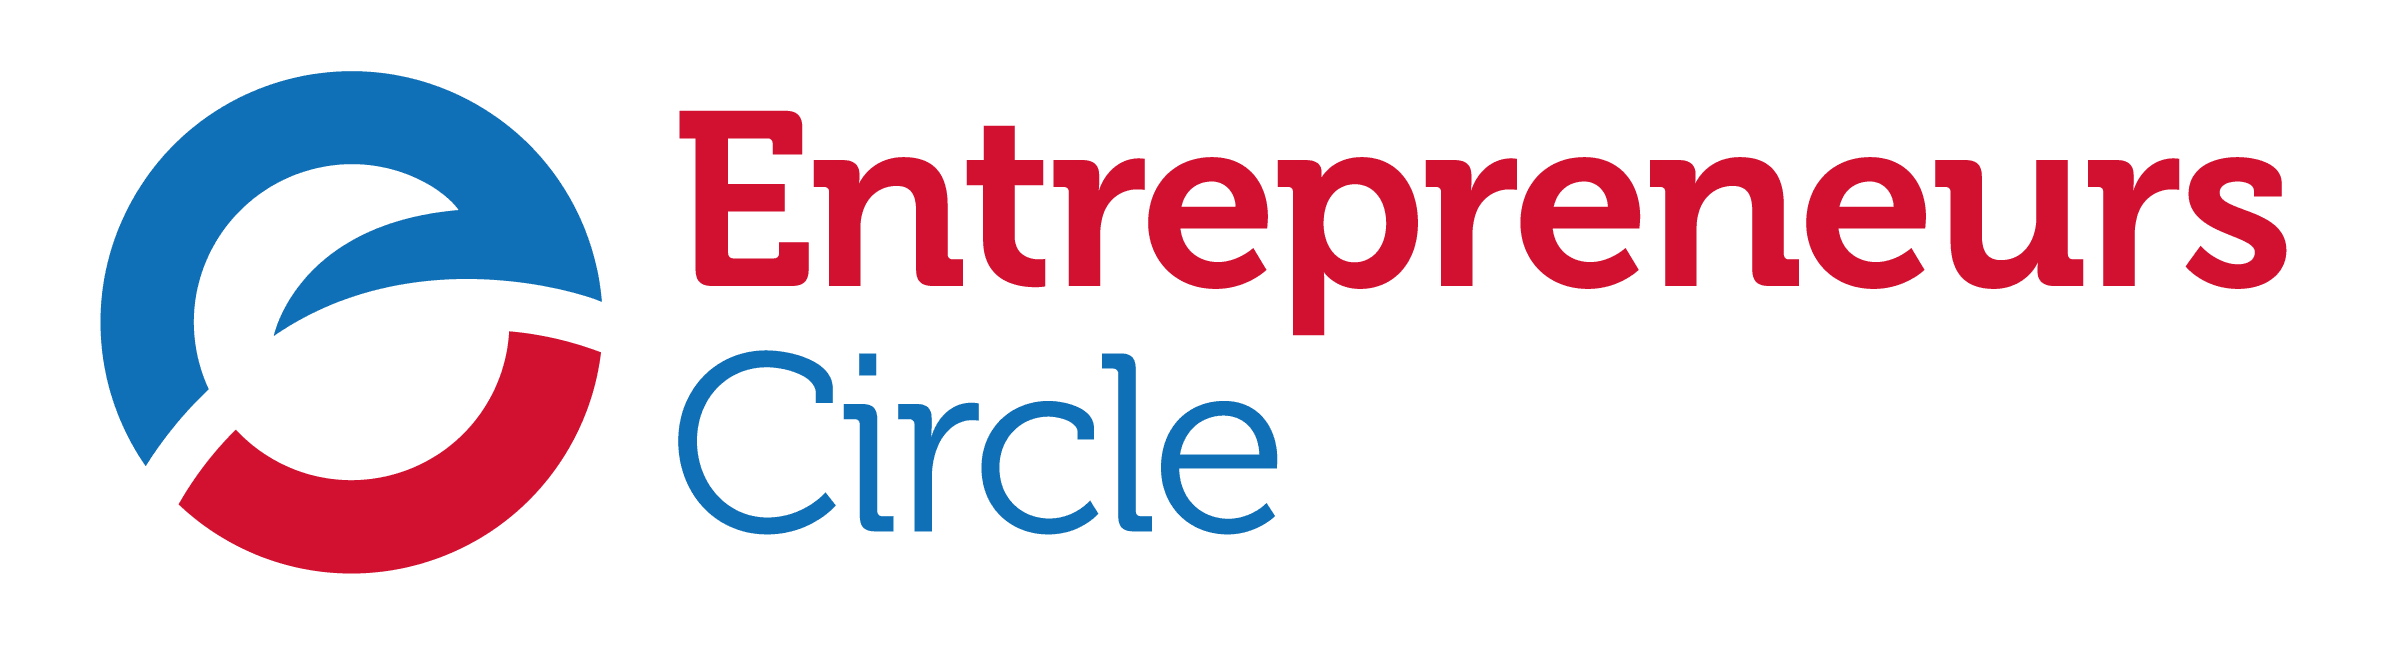 Entrepreneurs Circle Logo